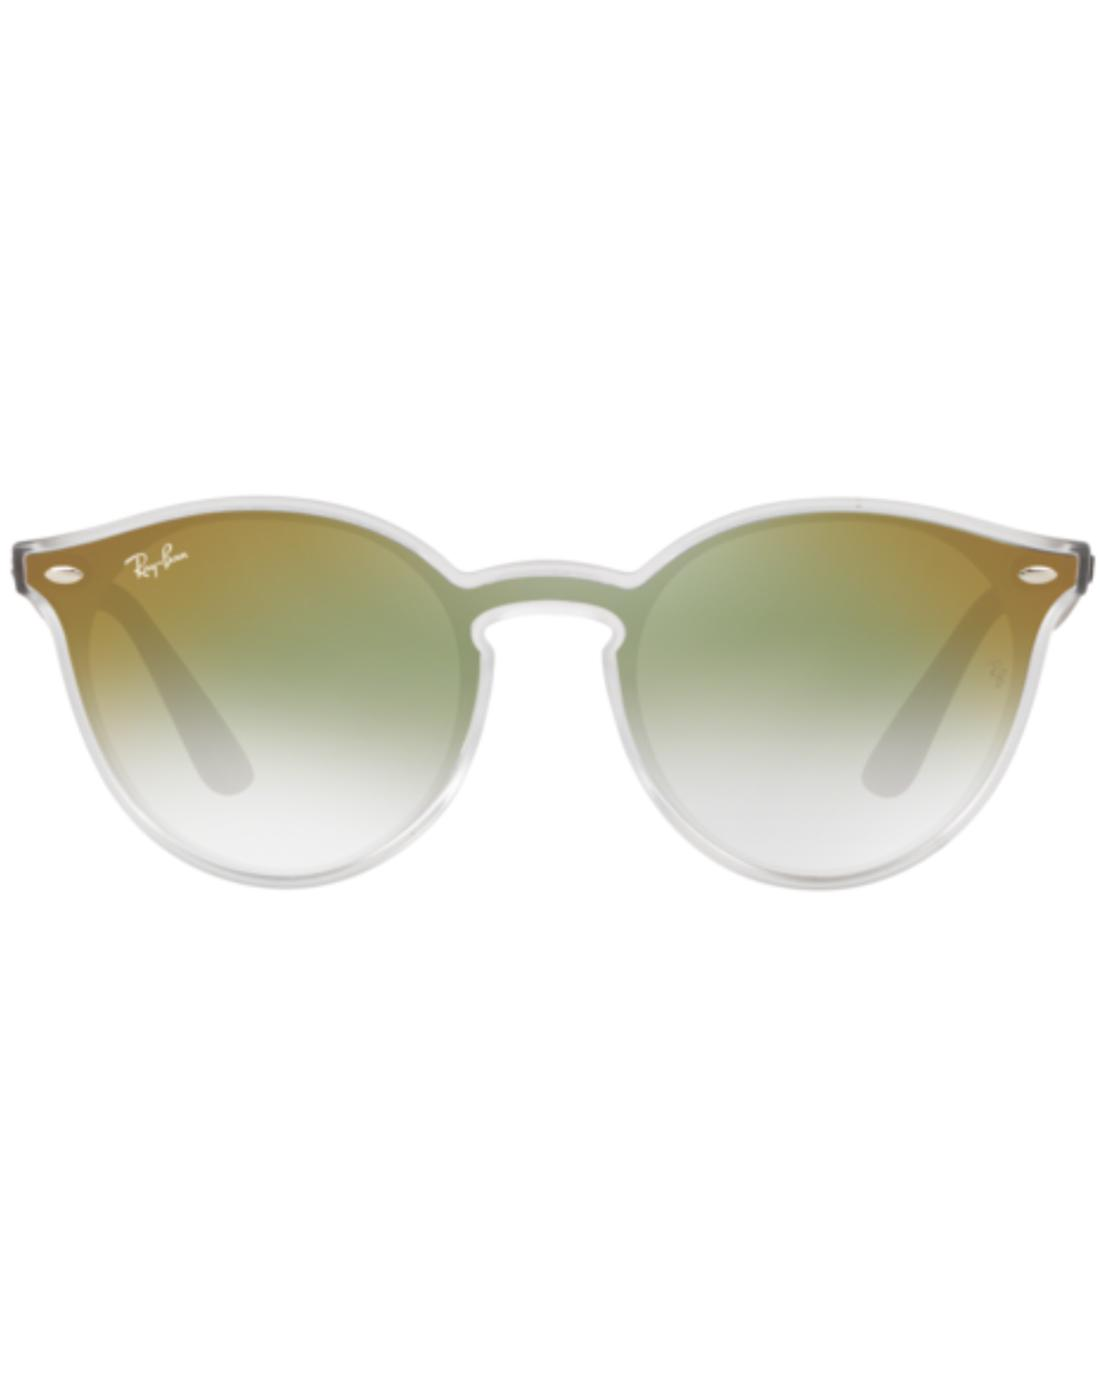 Blaze Clubround RAY-BAN Mirror Sunglasses Green